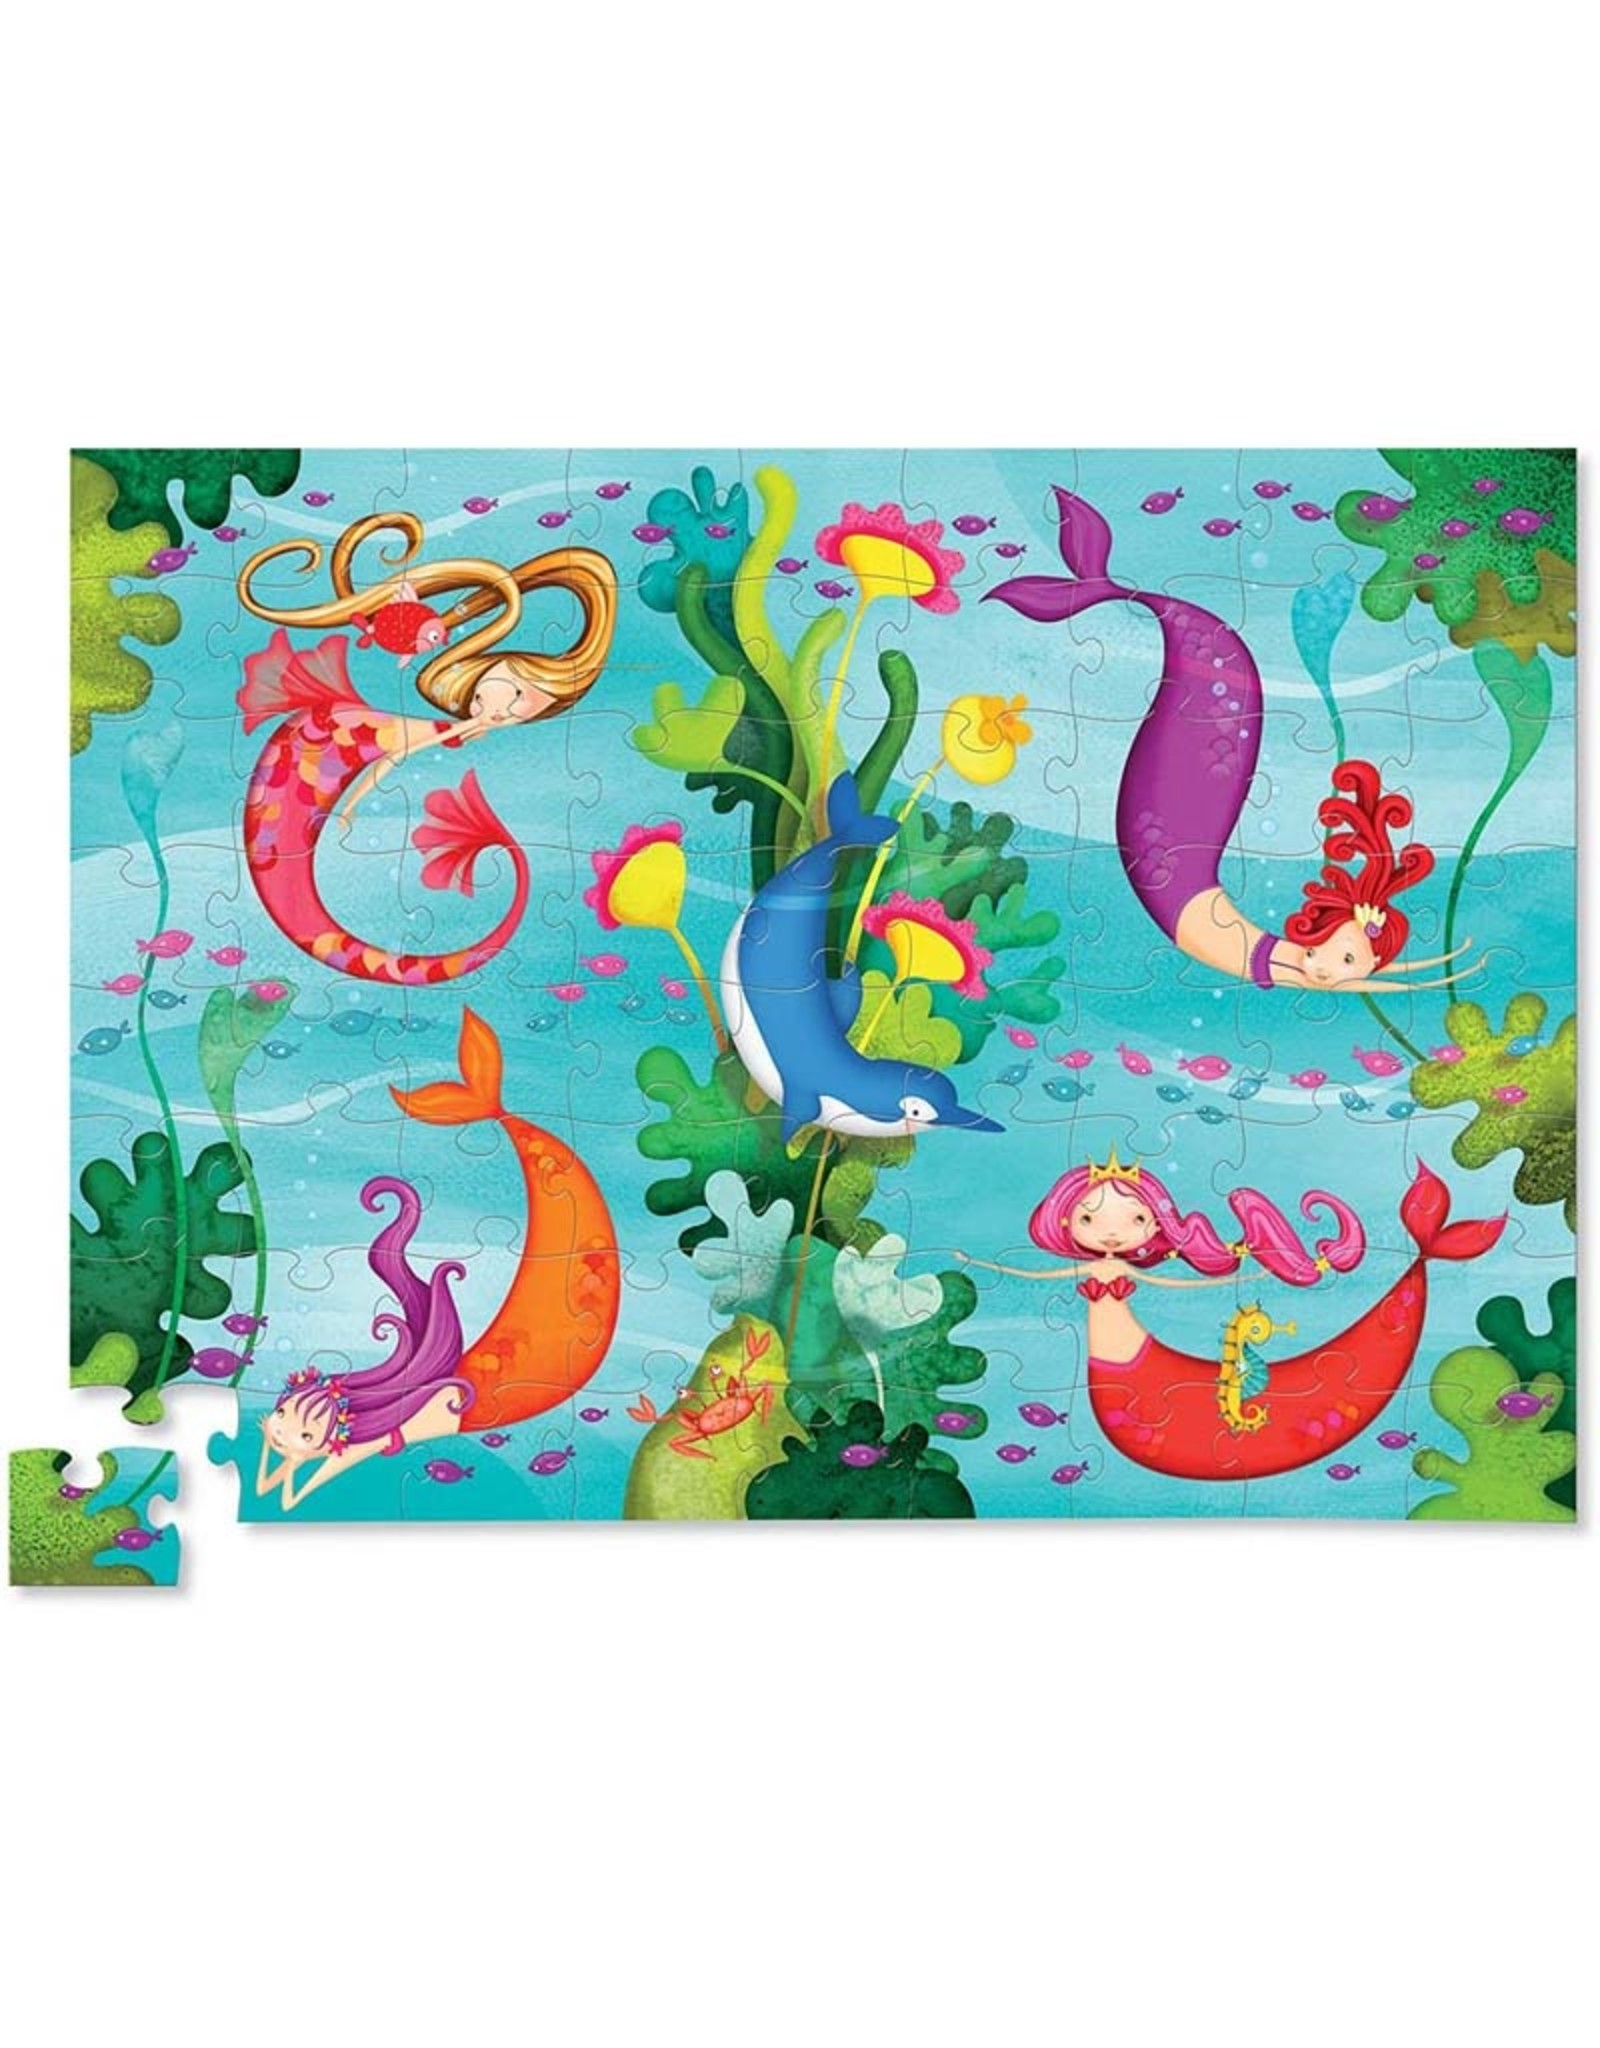 Crocodile Creek 72pc Puzzle Mermaid